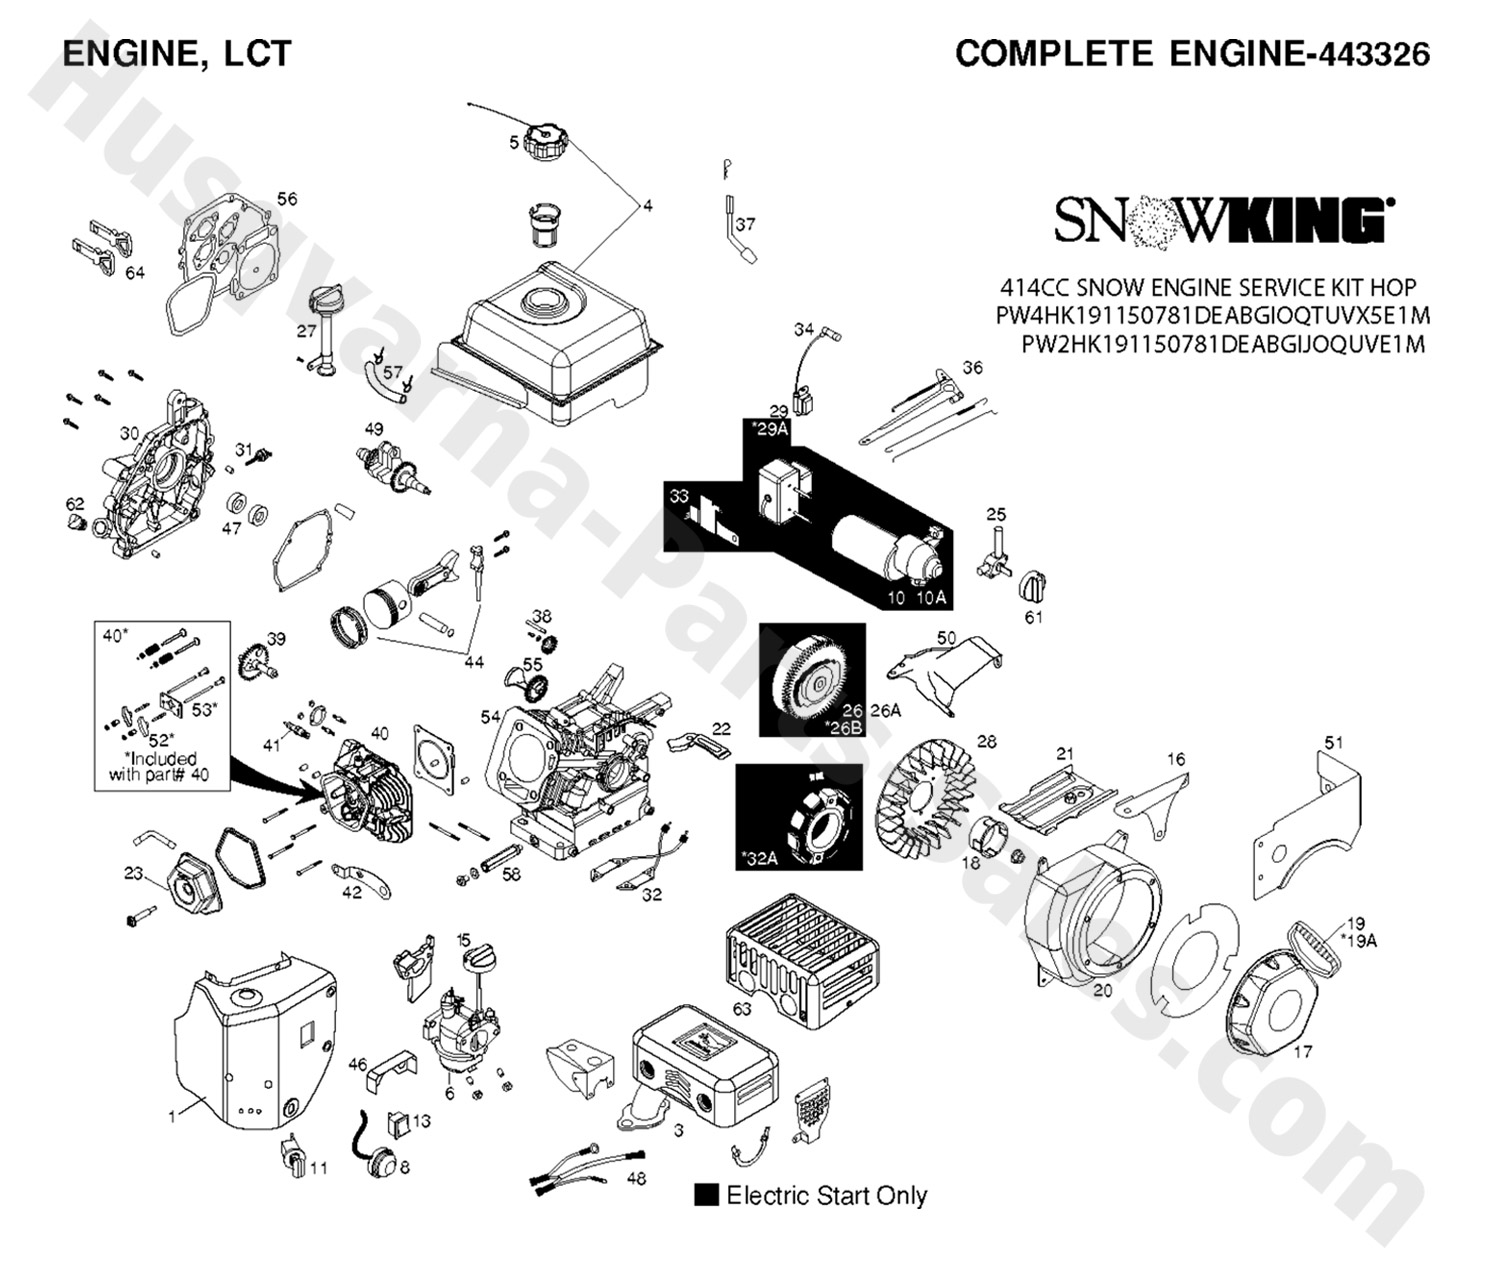 Volvo S70 Glt Engine Diagram Volvo 960 Engine Wiring